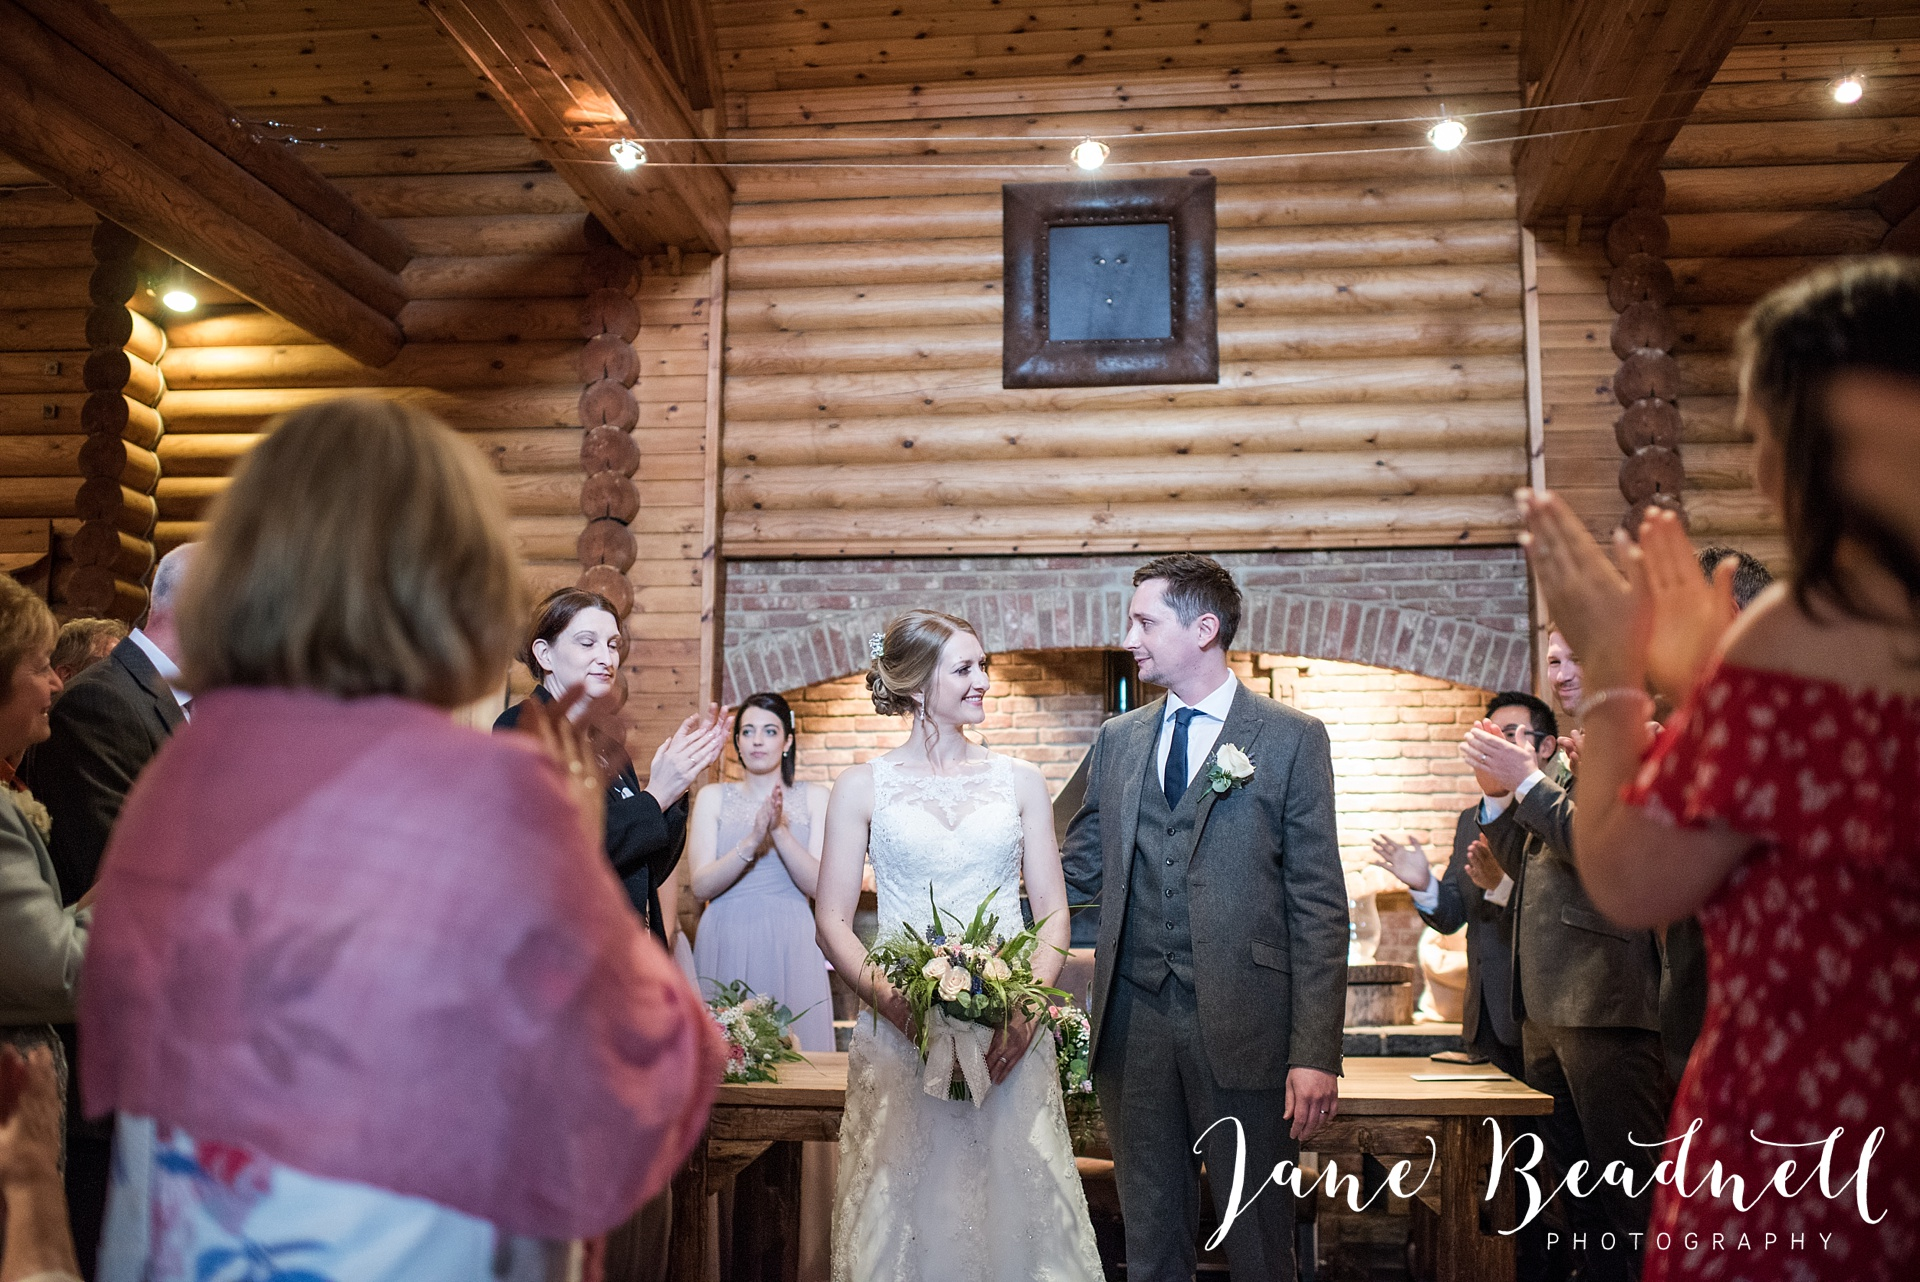 Otley Chevin Lodge wedding photography by Jane Beadnell Photography Leeds_0058